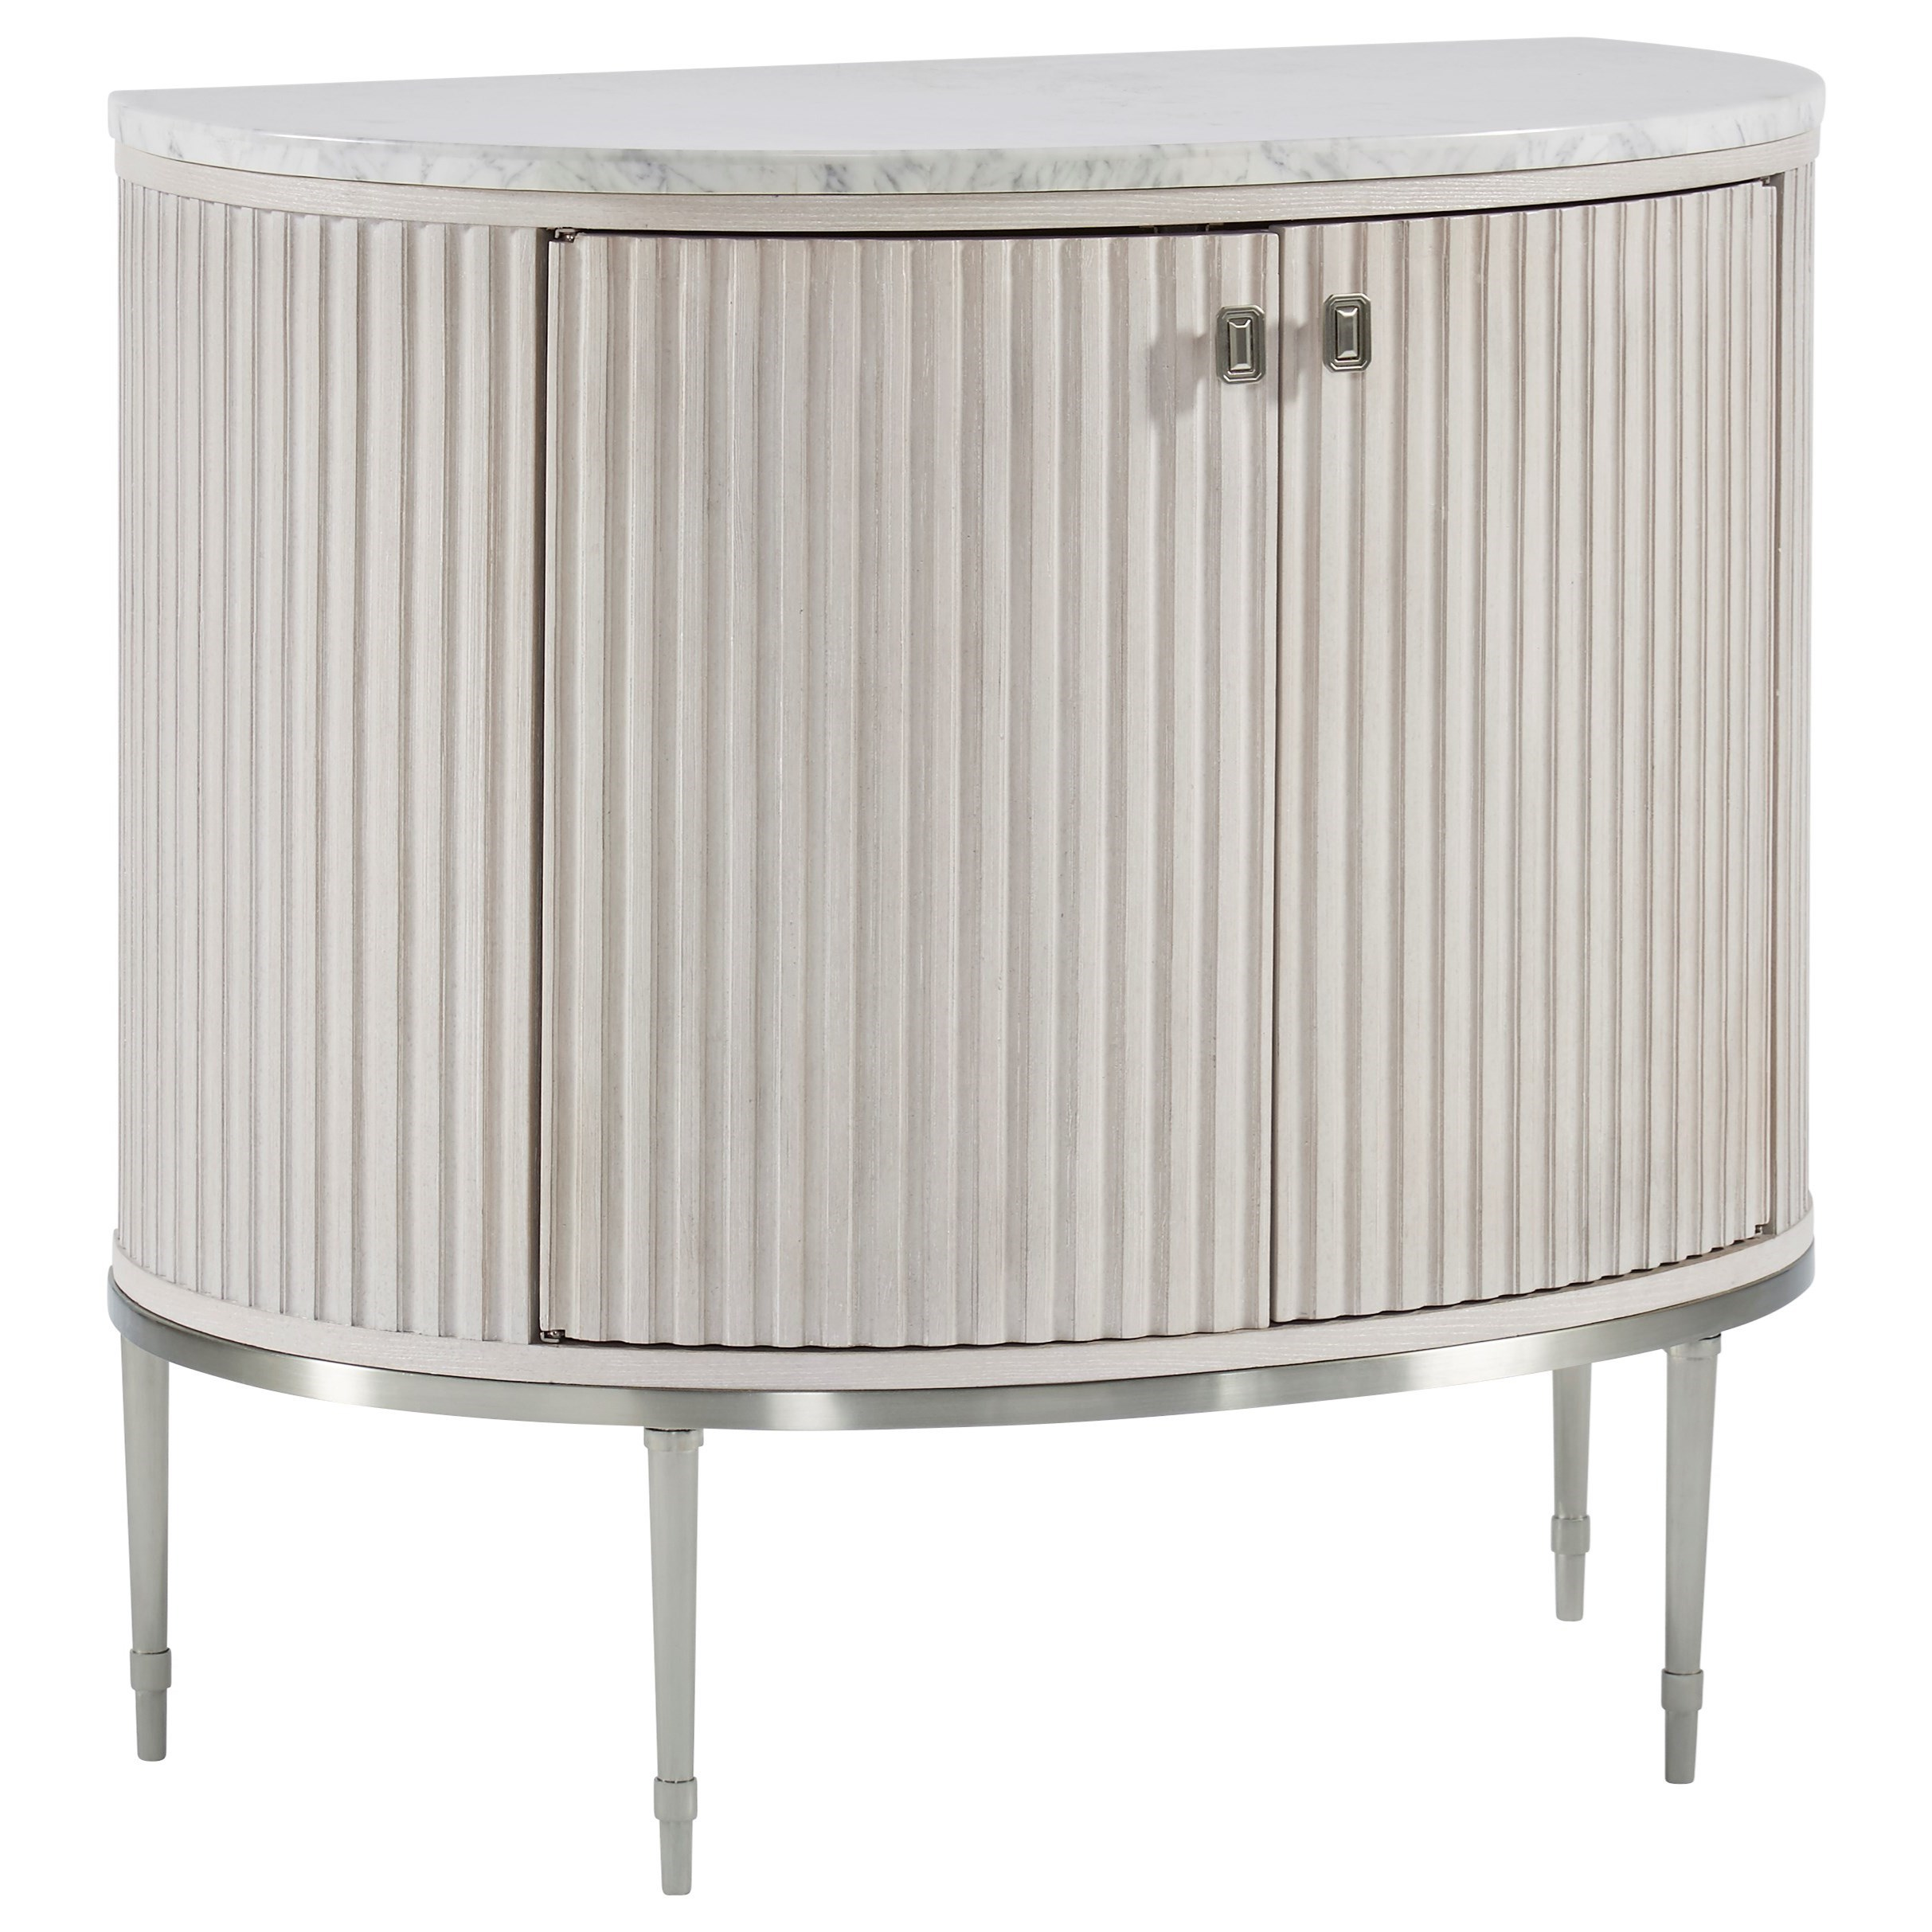 La Scala Door Chest by A.R.T. Furniture Inc at Baer's Furniture